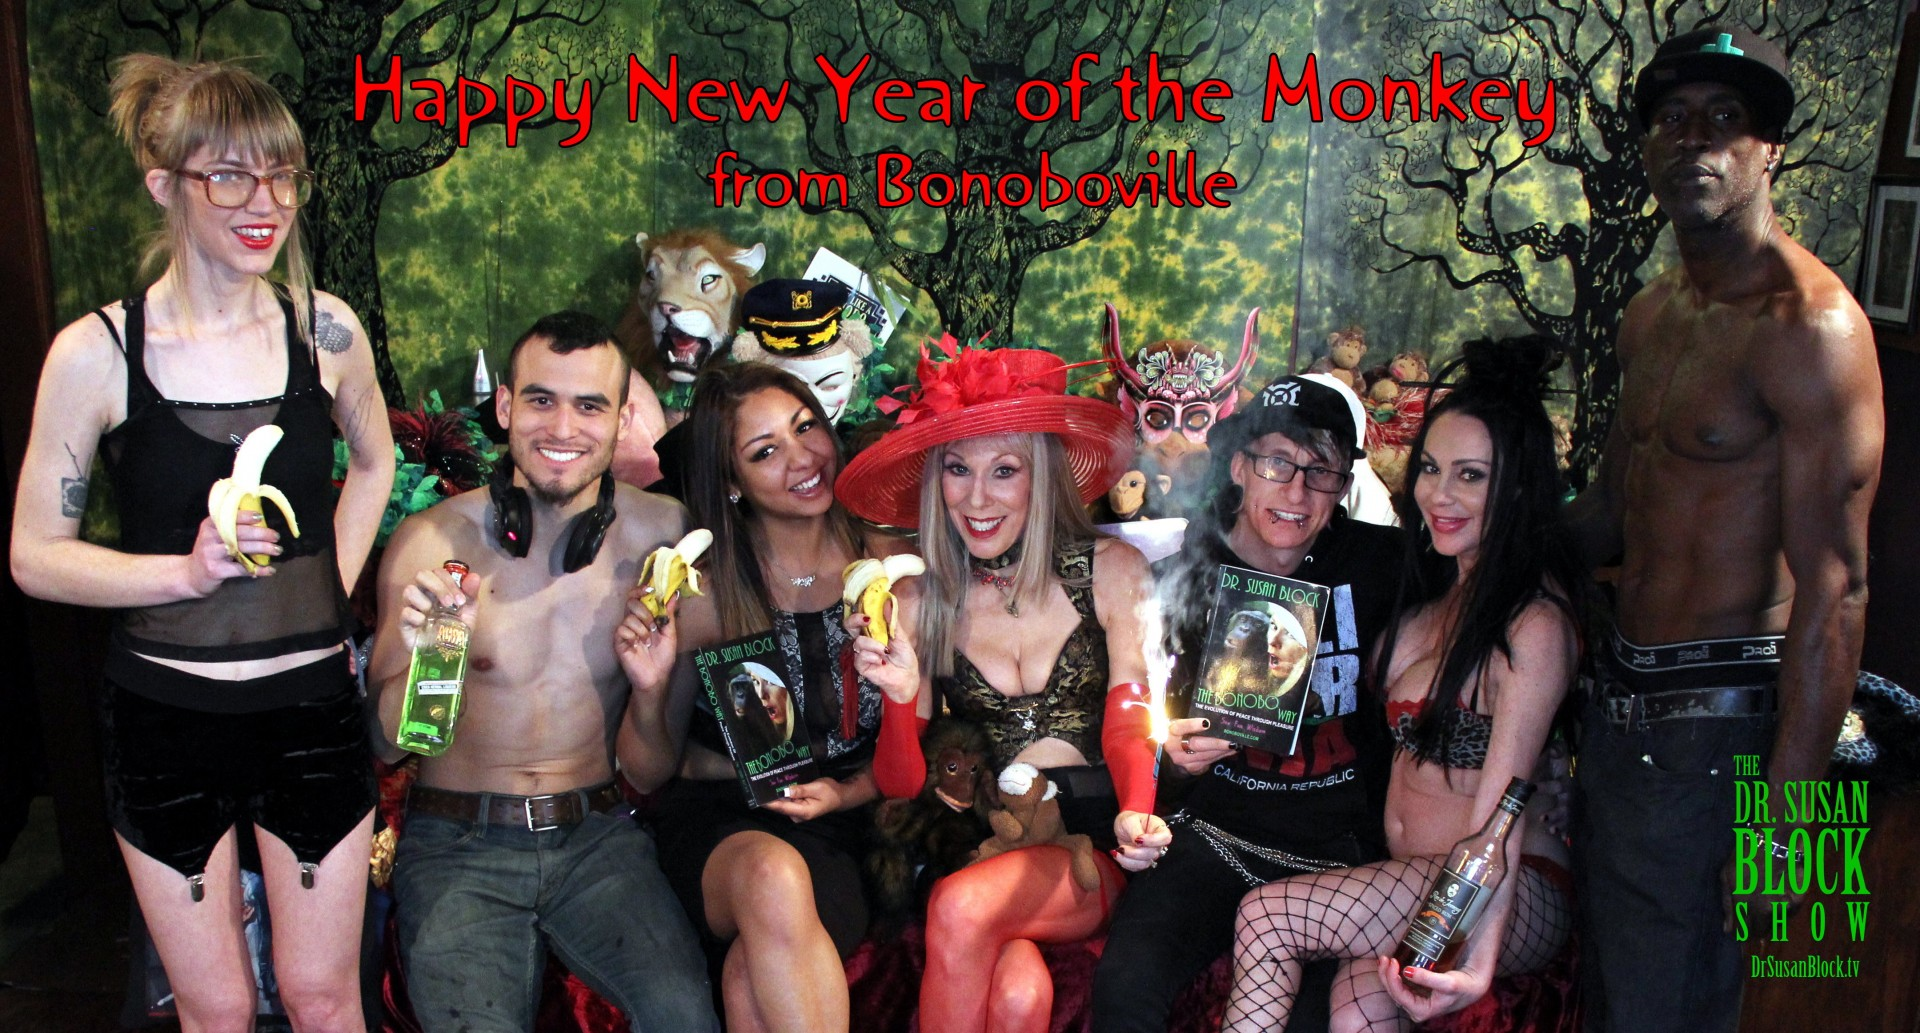 Go Bonobos in the Year of the Monkey! Photo: Unscene Abe